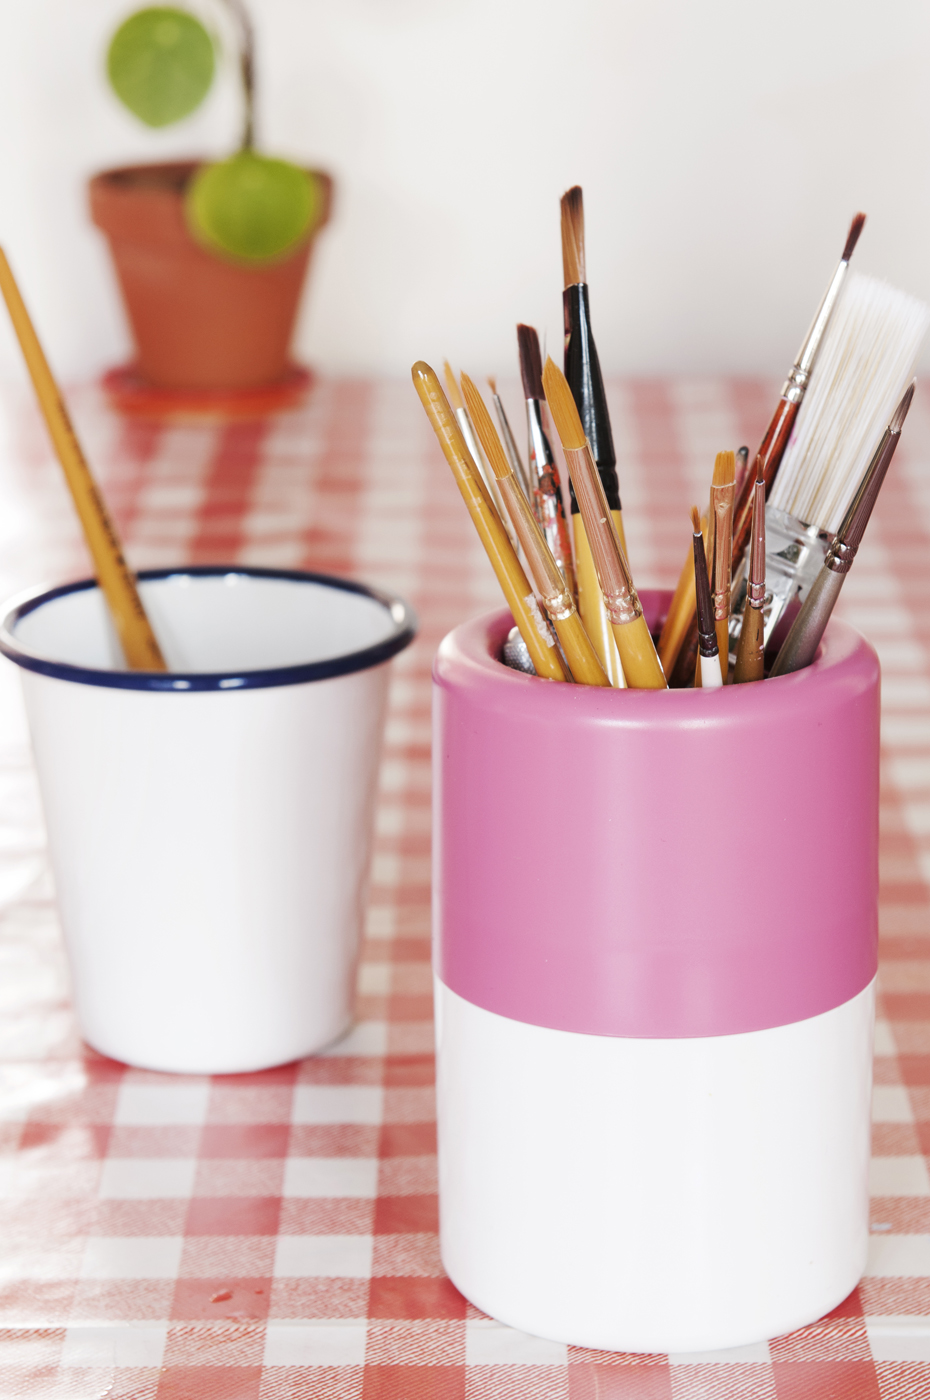 paint brushes, meet the maker, interview, red hand gang, abi simmons